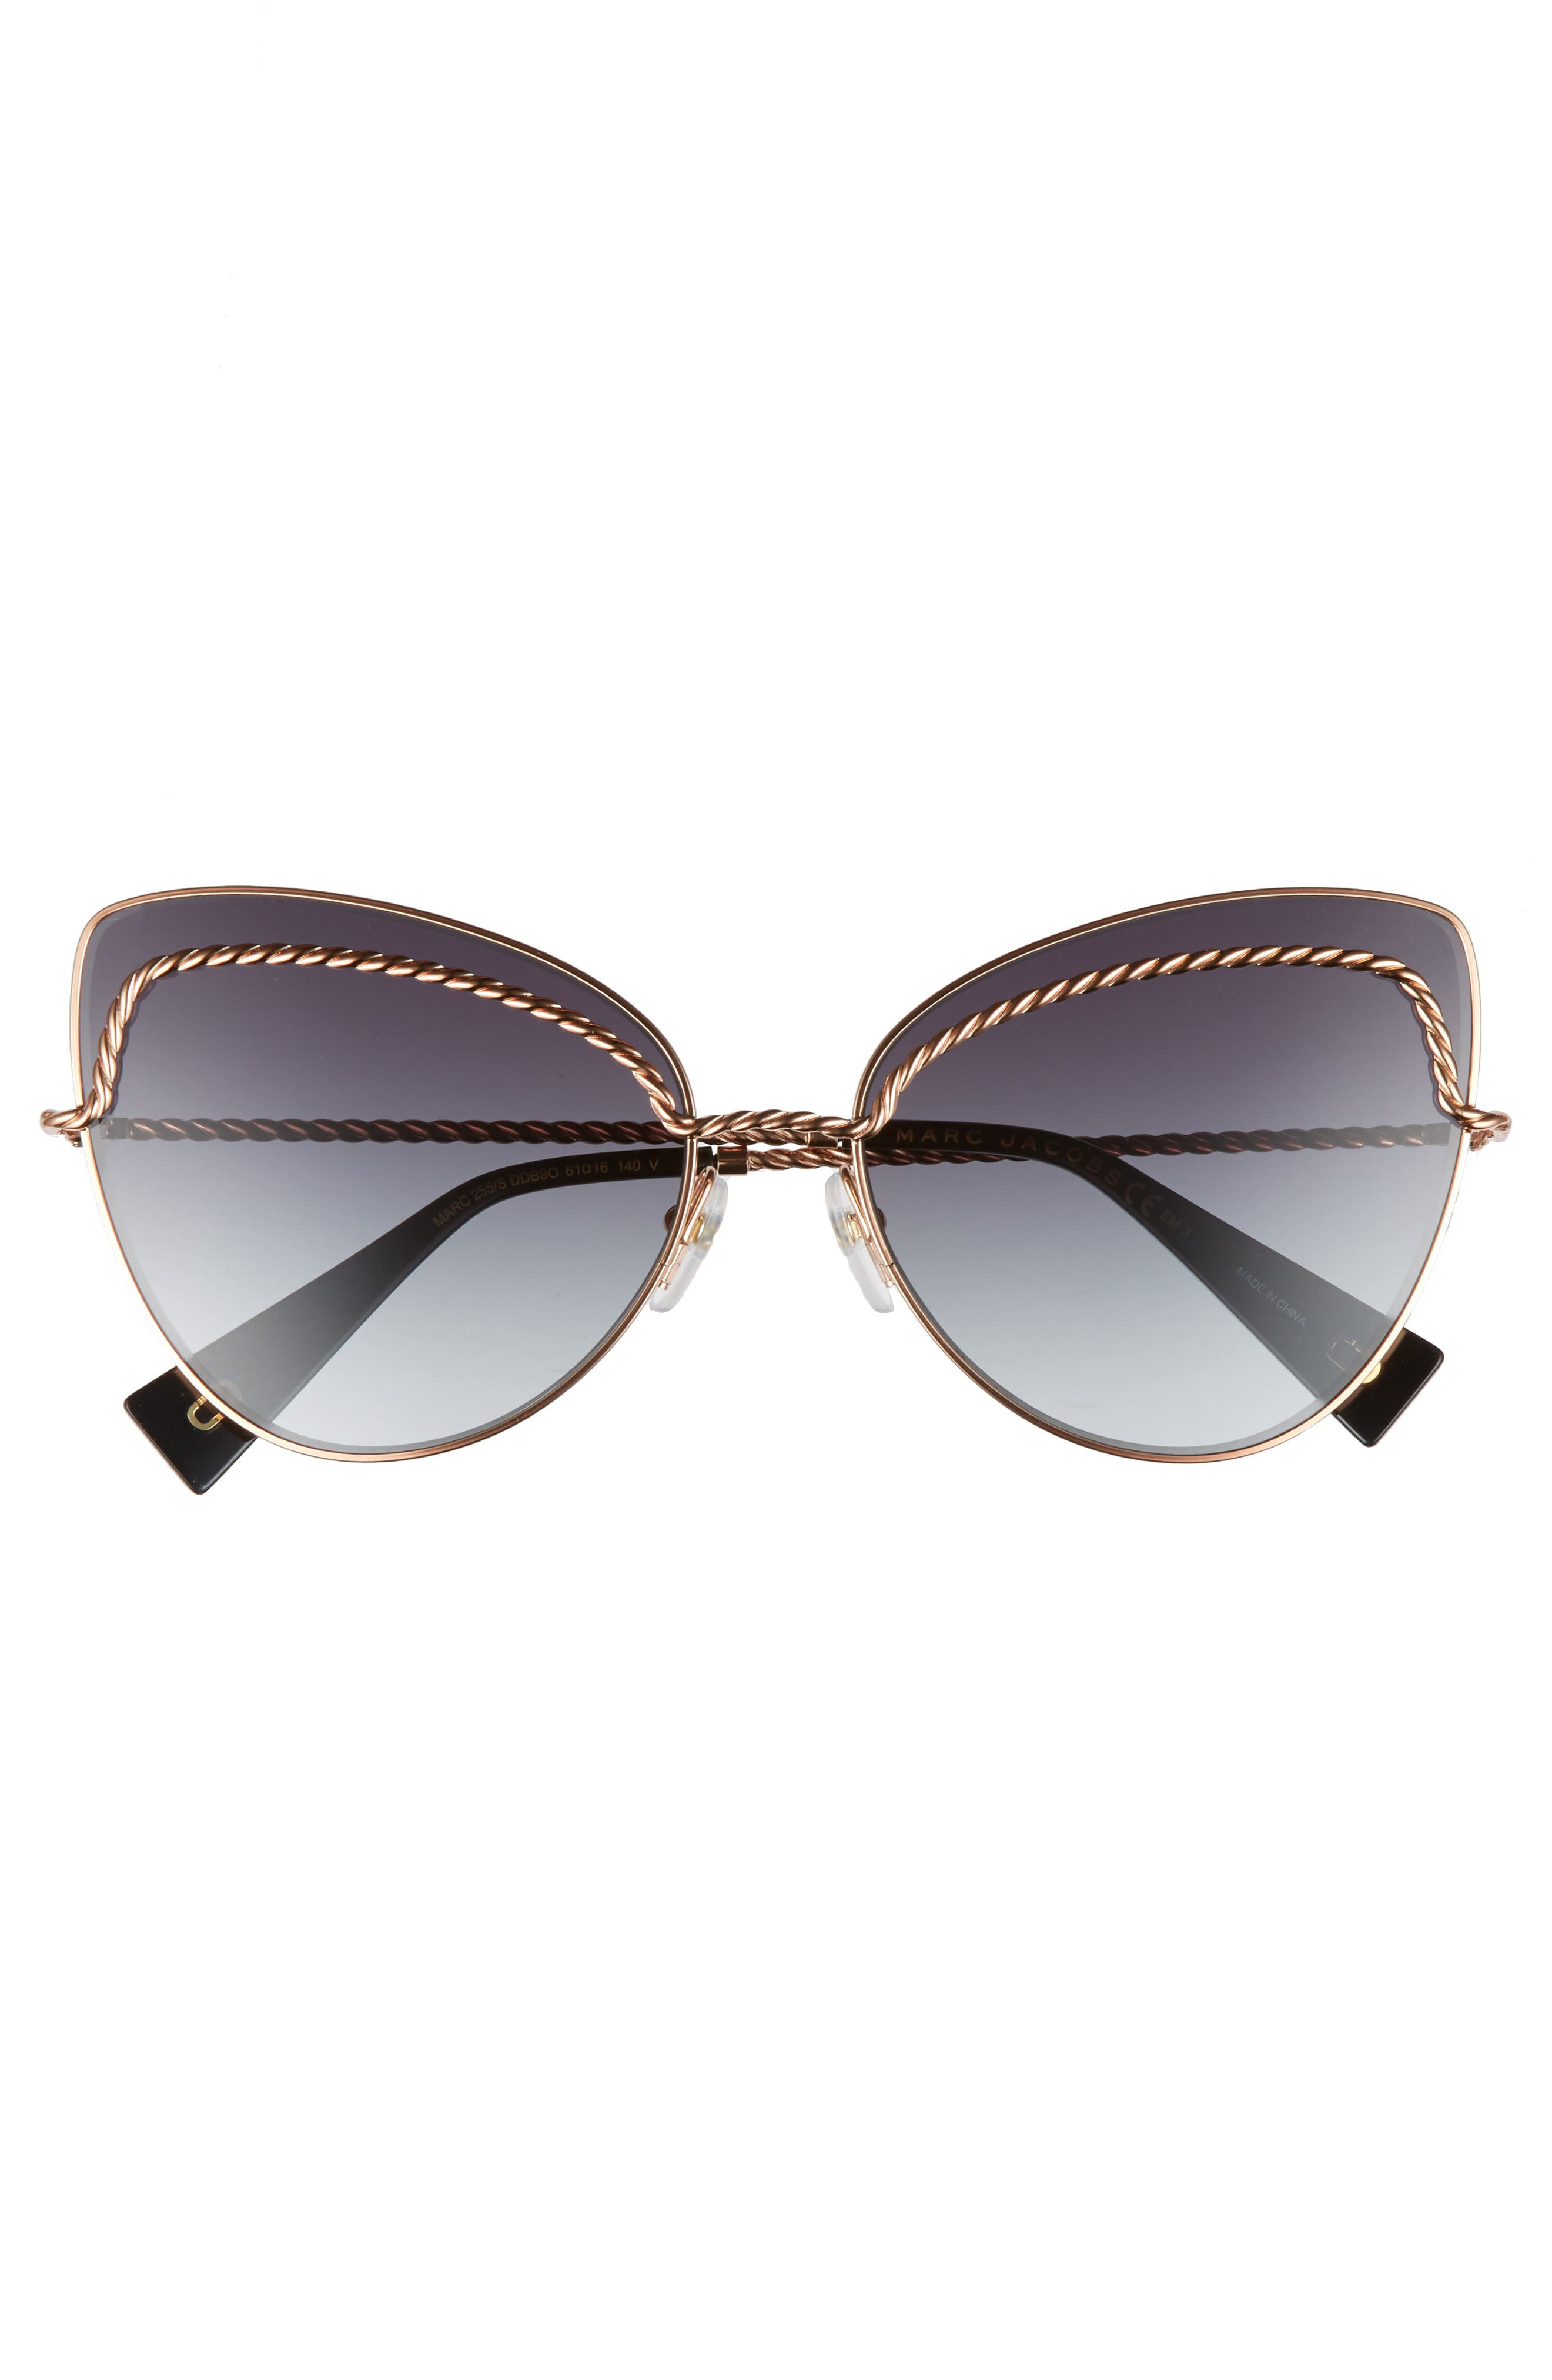 61mm Butterfly Sunglasses,                             Alternate thumbnail 3, color,                             710